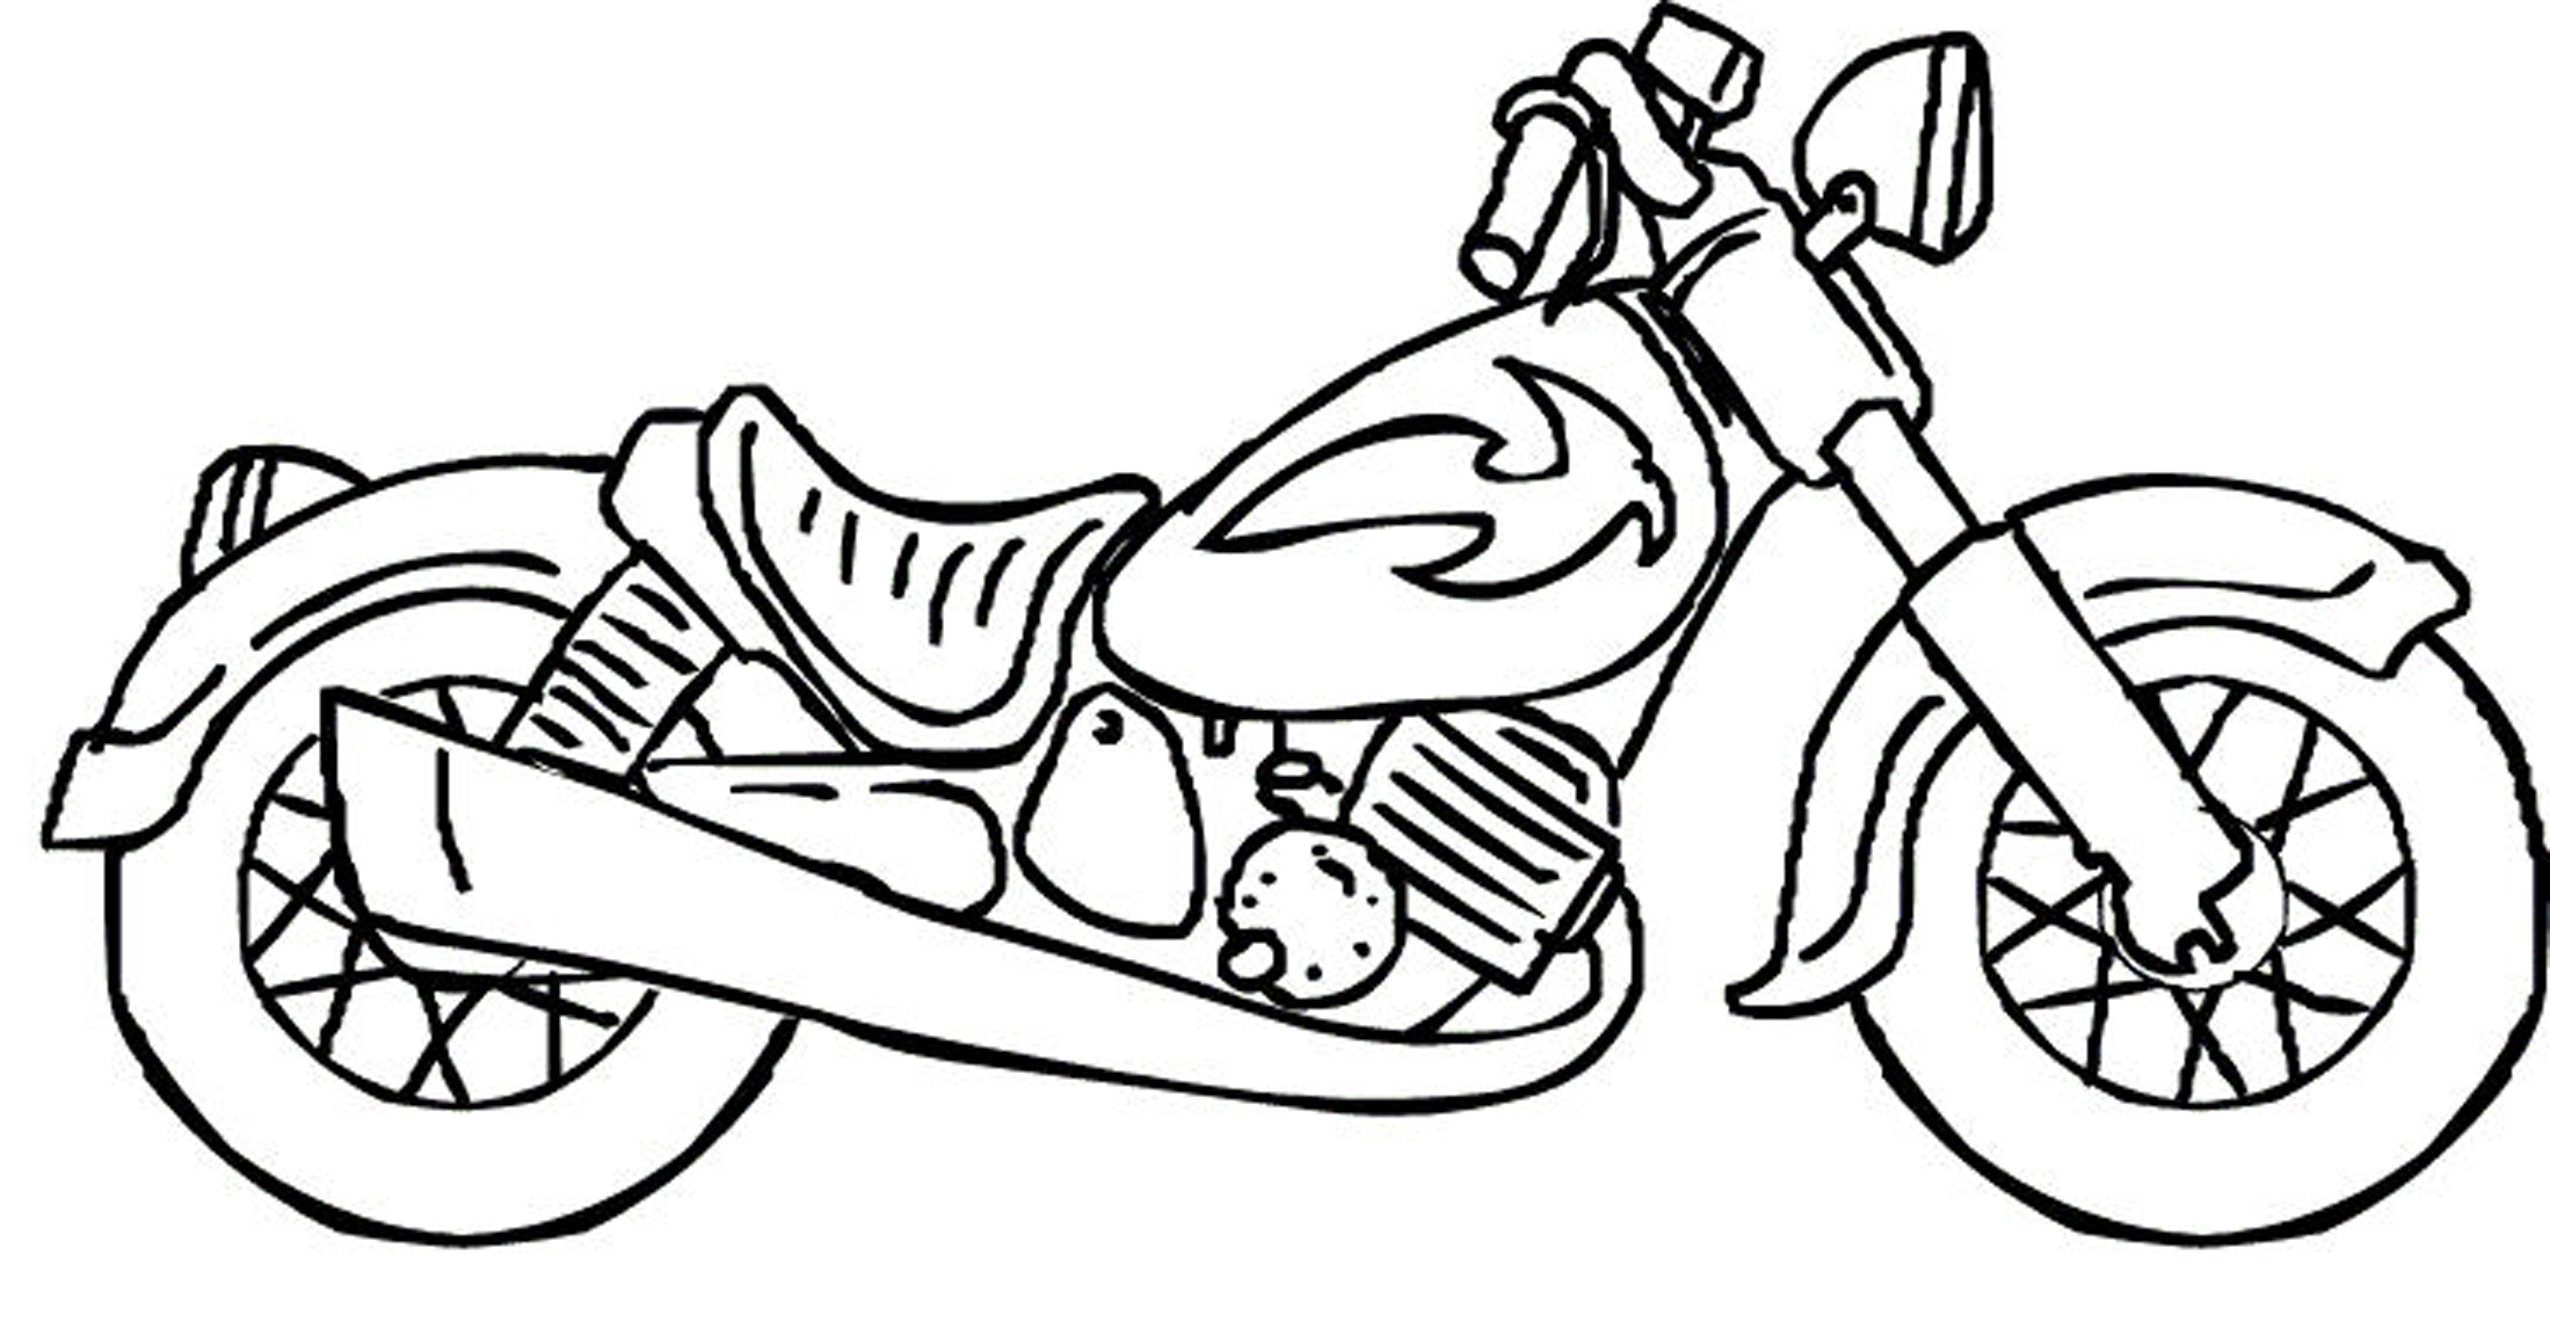 free coloring pages for boys - happy coloring sheets for boys cool coloring design gallery ideas